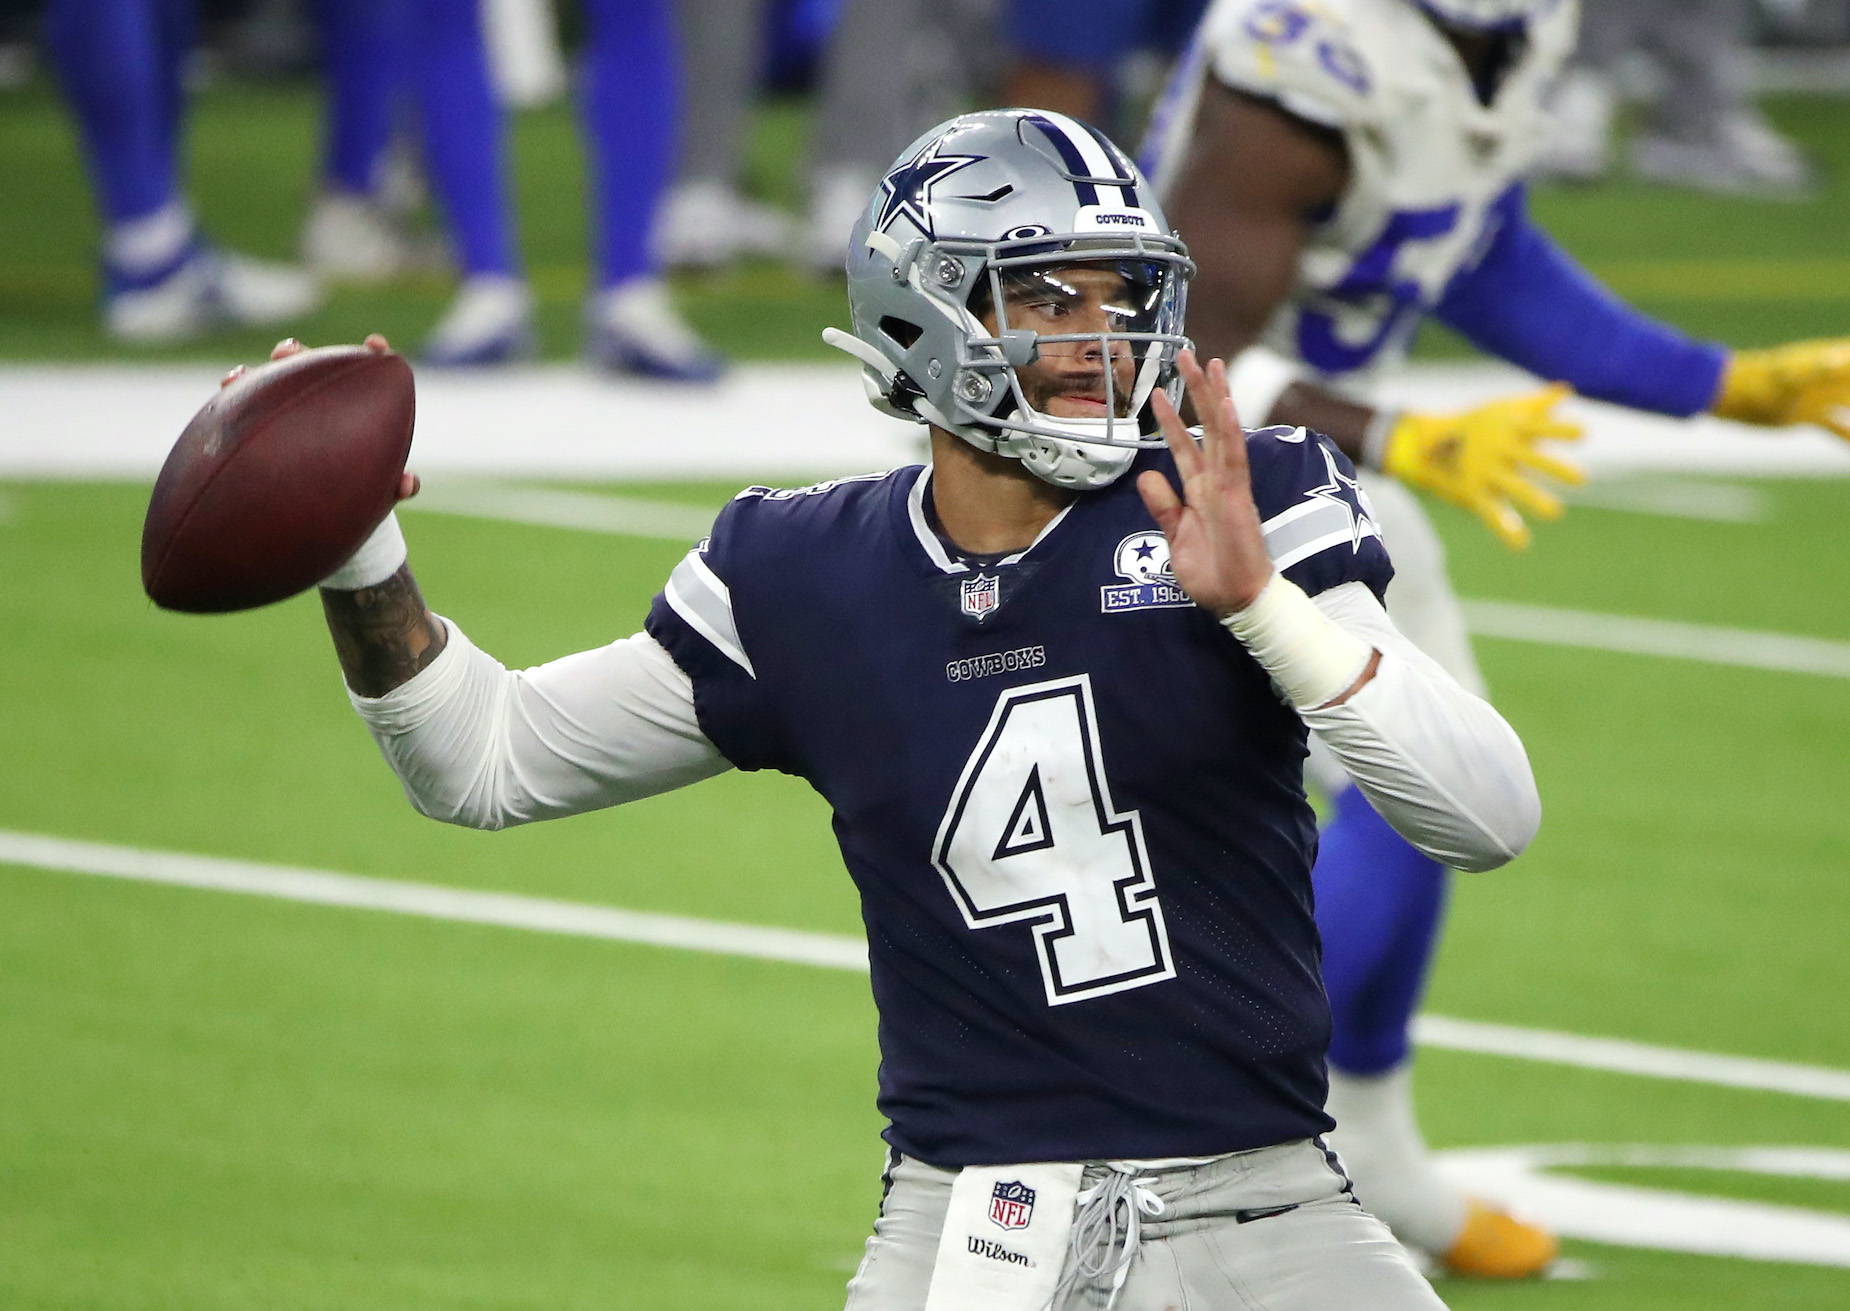 Dak Prescott could score a pretty perfect contract with the Dallas Cowboys, according to a new prediction.